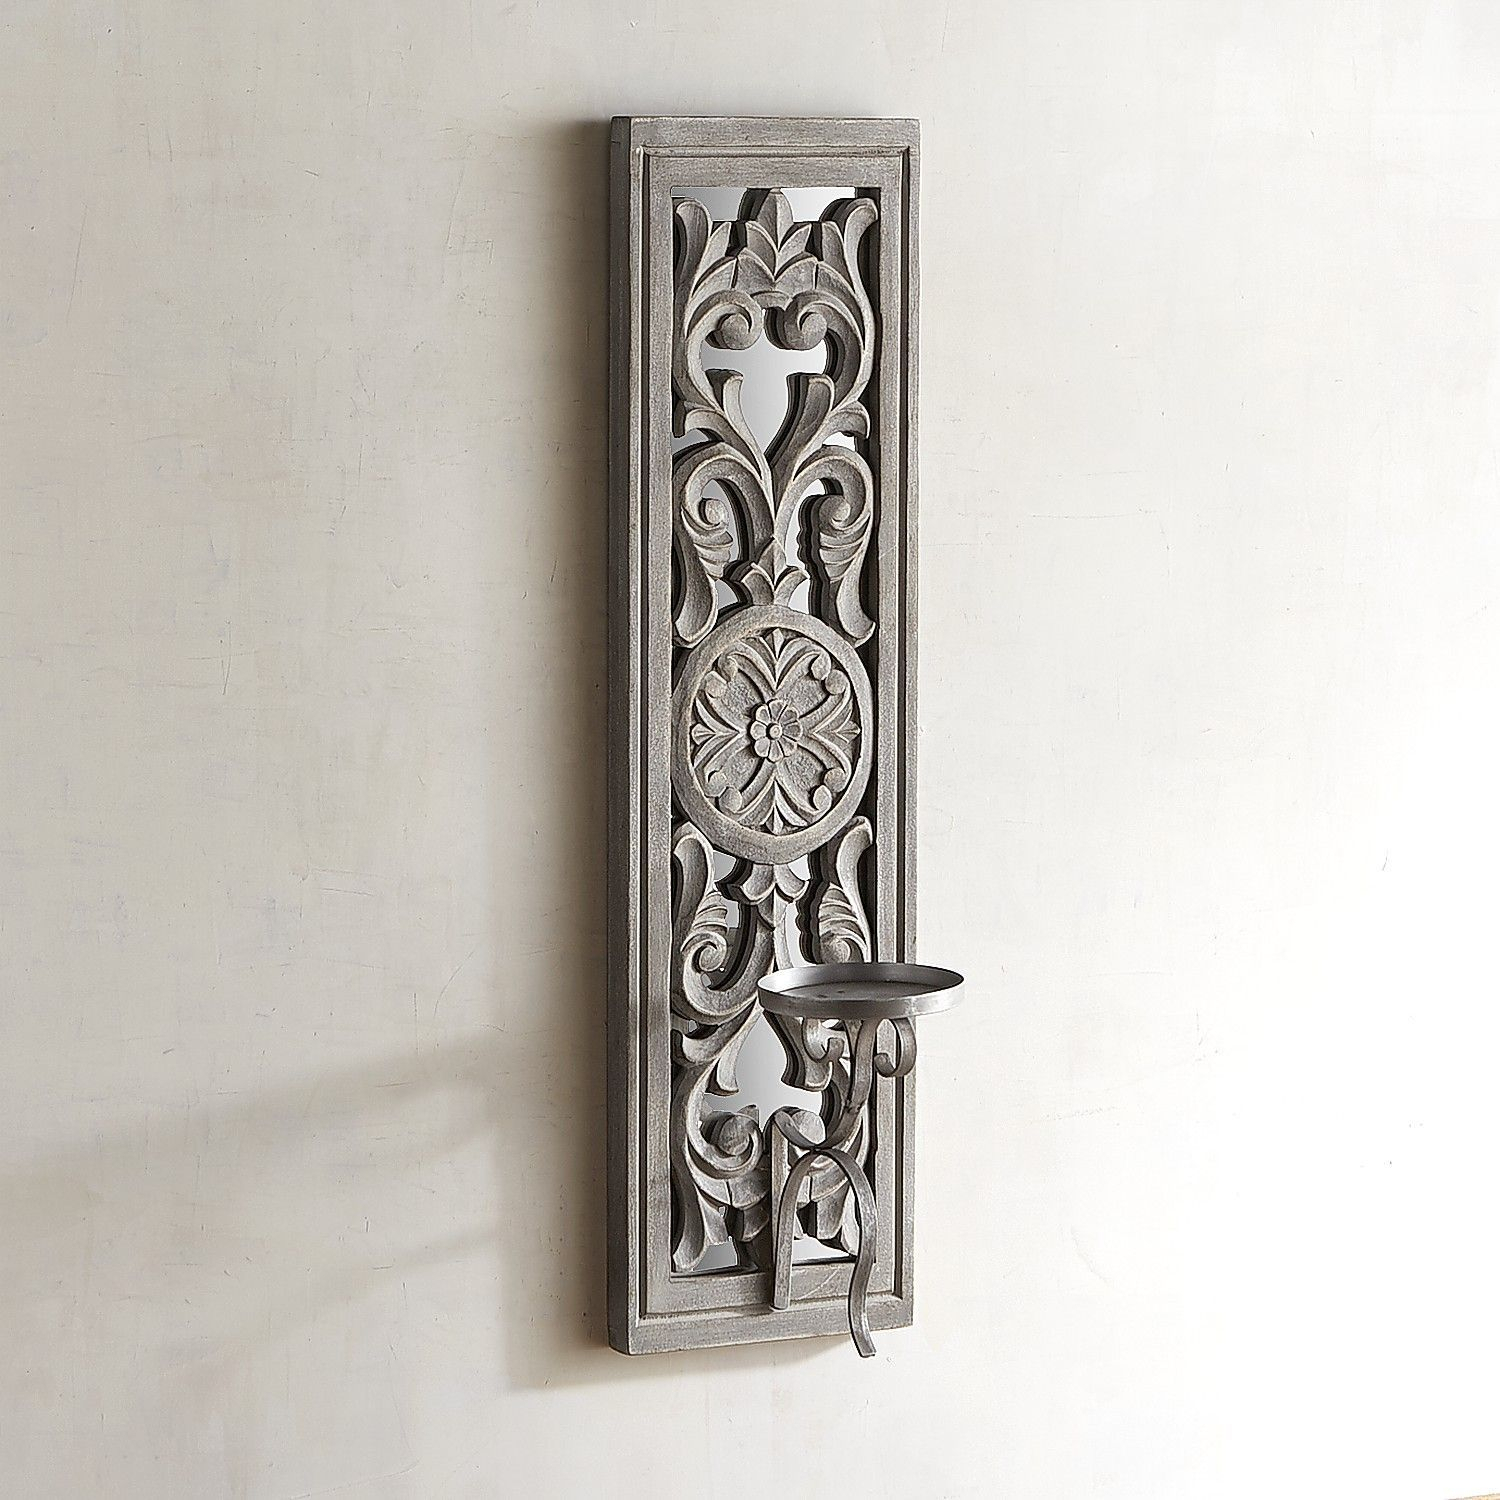 Carved White Wood Candle Holder Wall Sconce | Products In Pertaining To 1 Piece Ortie Panel Wall Decor (View 10 of 30)